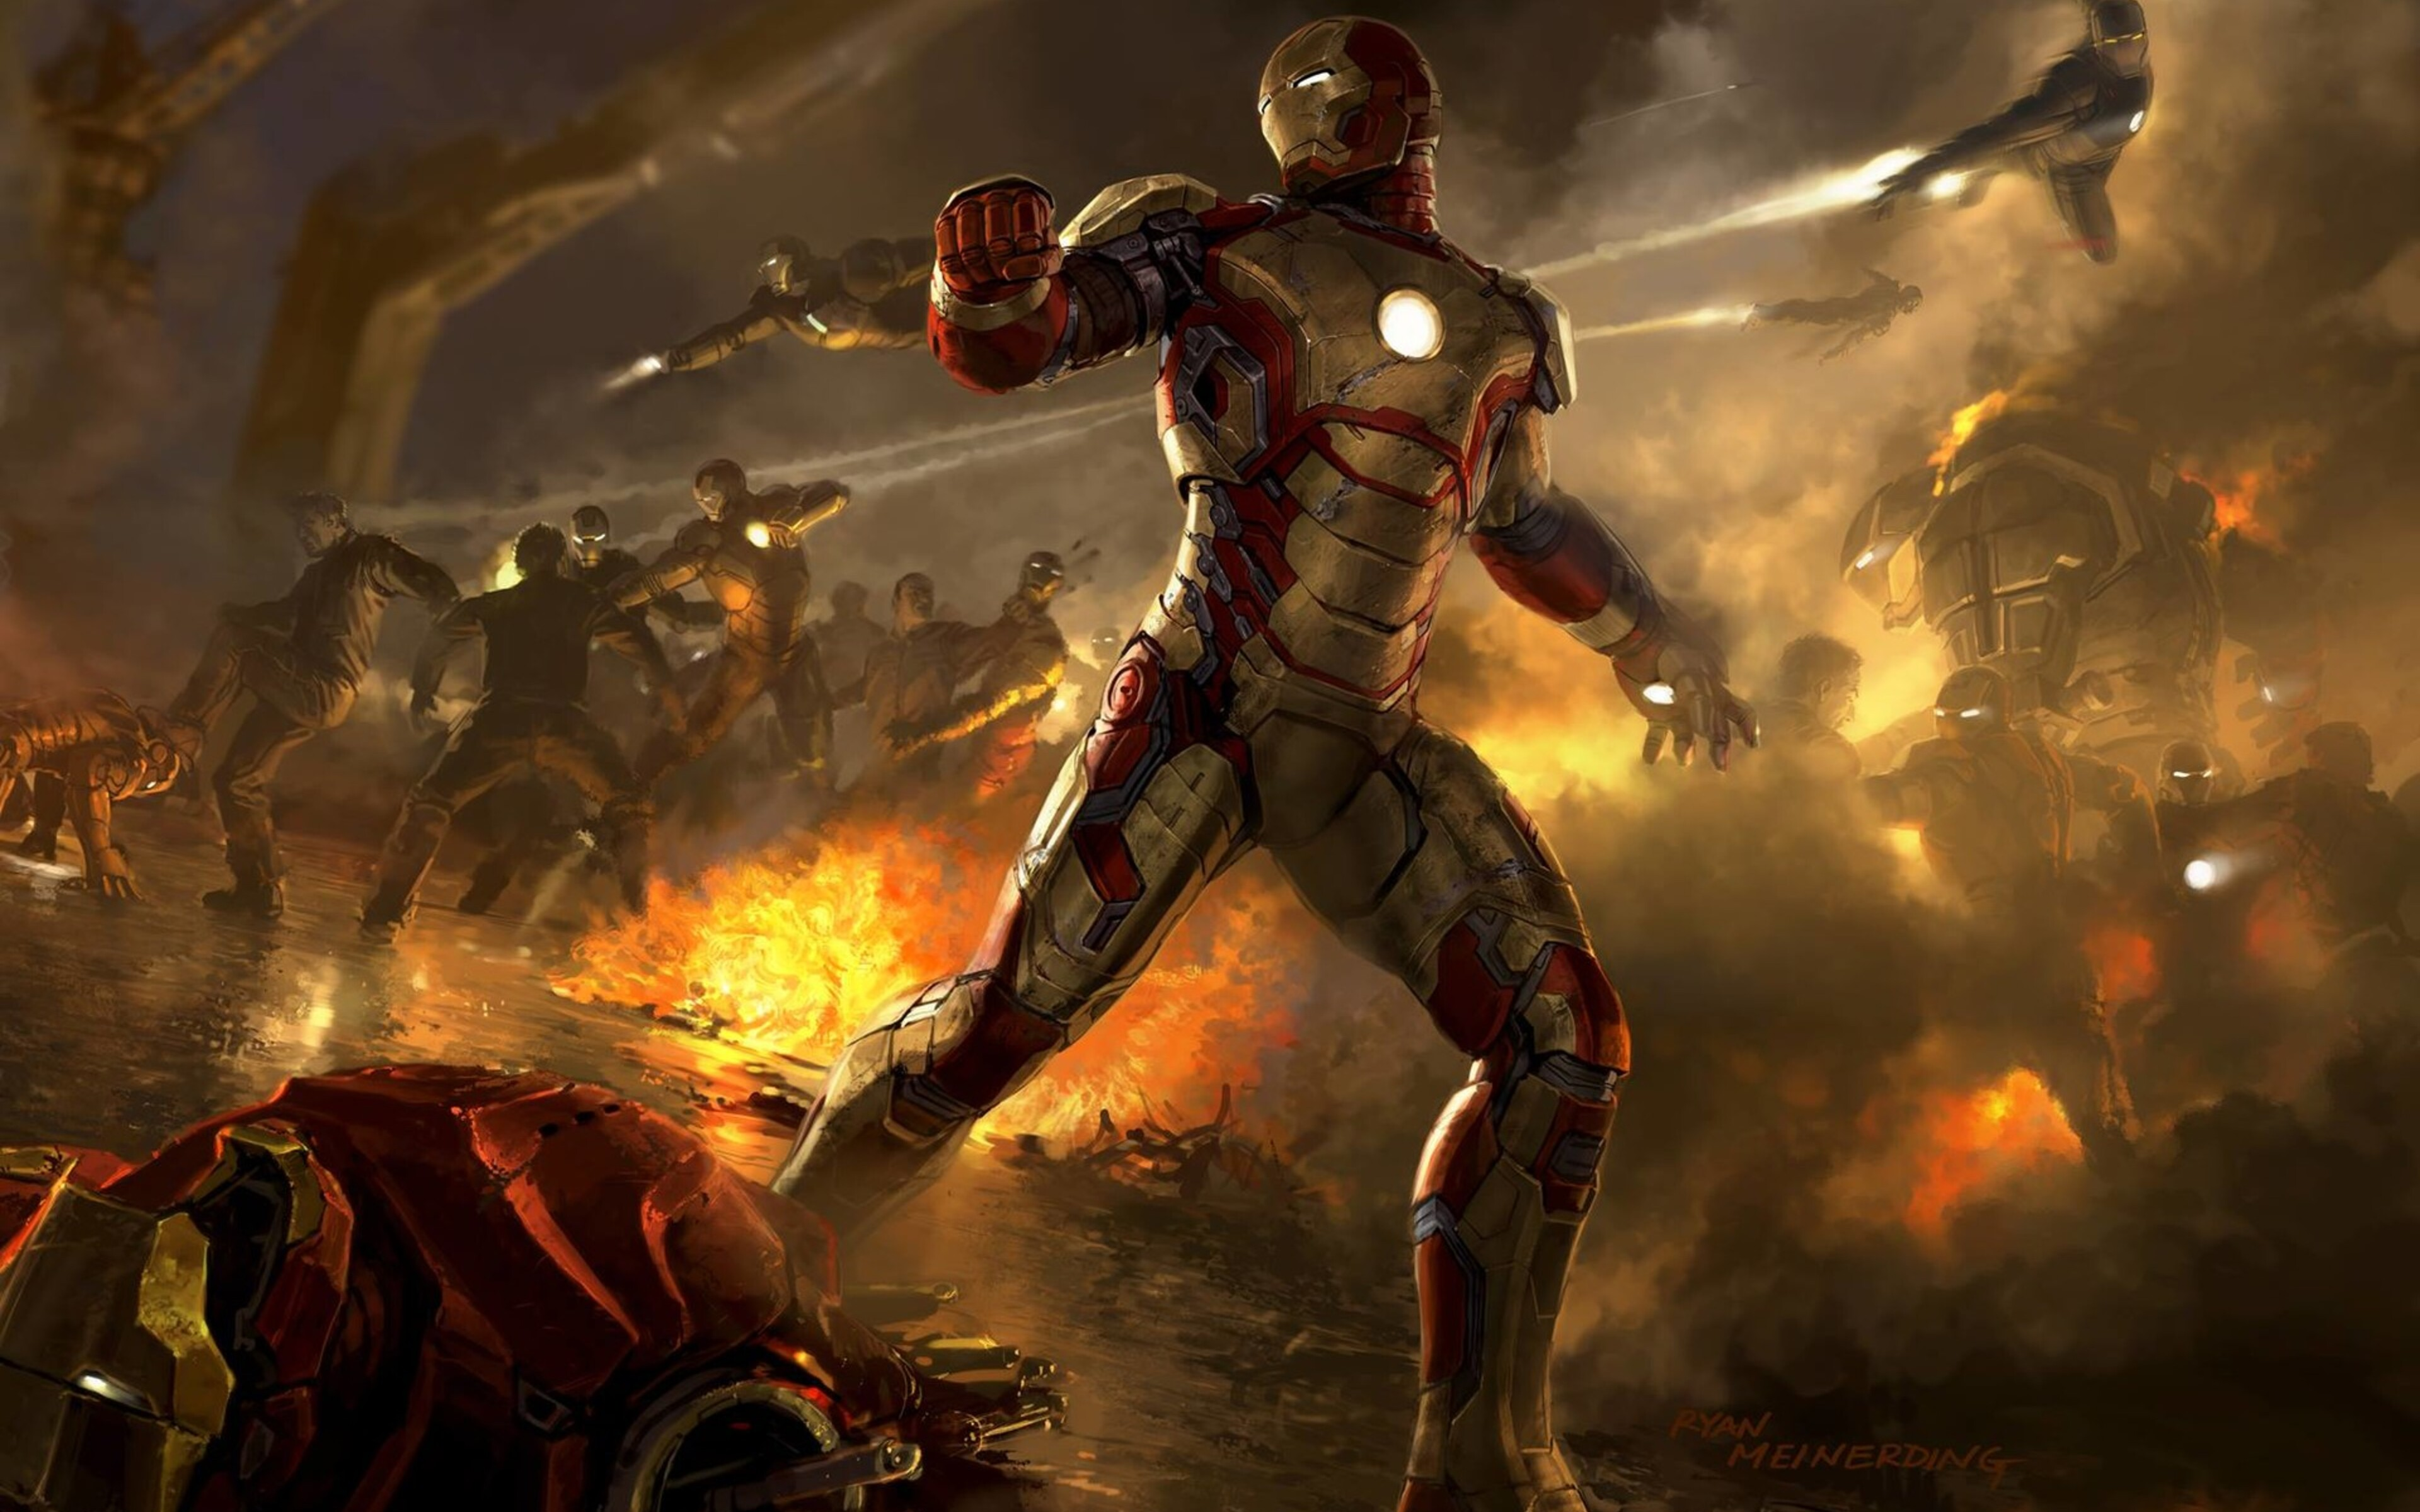 3840x2400 iron man fanart 4k hd 4k wallpapers, images, backgrounds